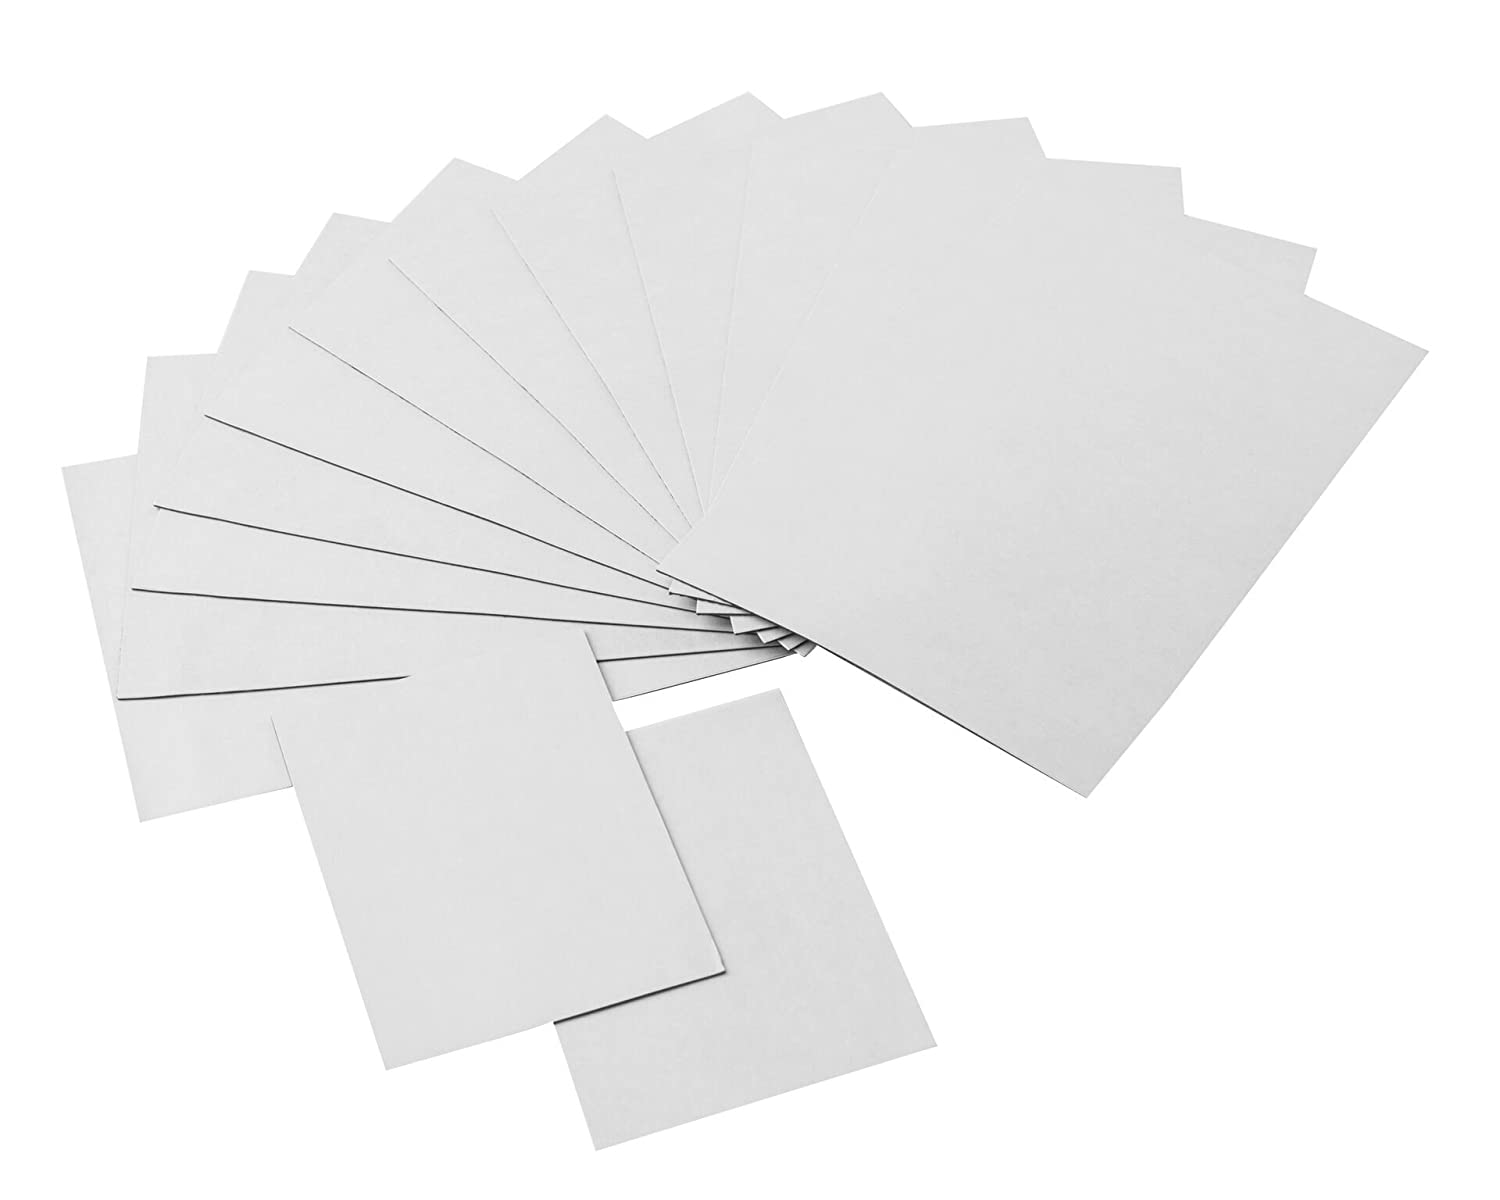 totalElement Strong Flexible Self-Adhesive Magnetic Sheets, 4 x 6 Inch and 2 x 3 Inch, Peel & Stick Refrigerator Magnets for Photos and Art (14 Pieces)